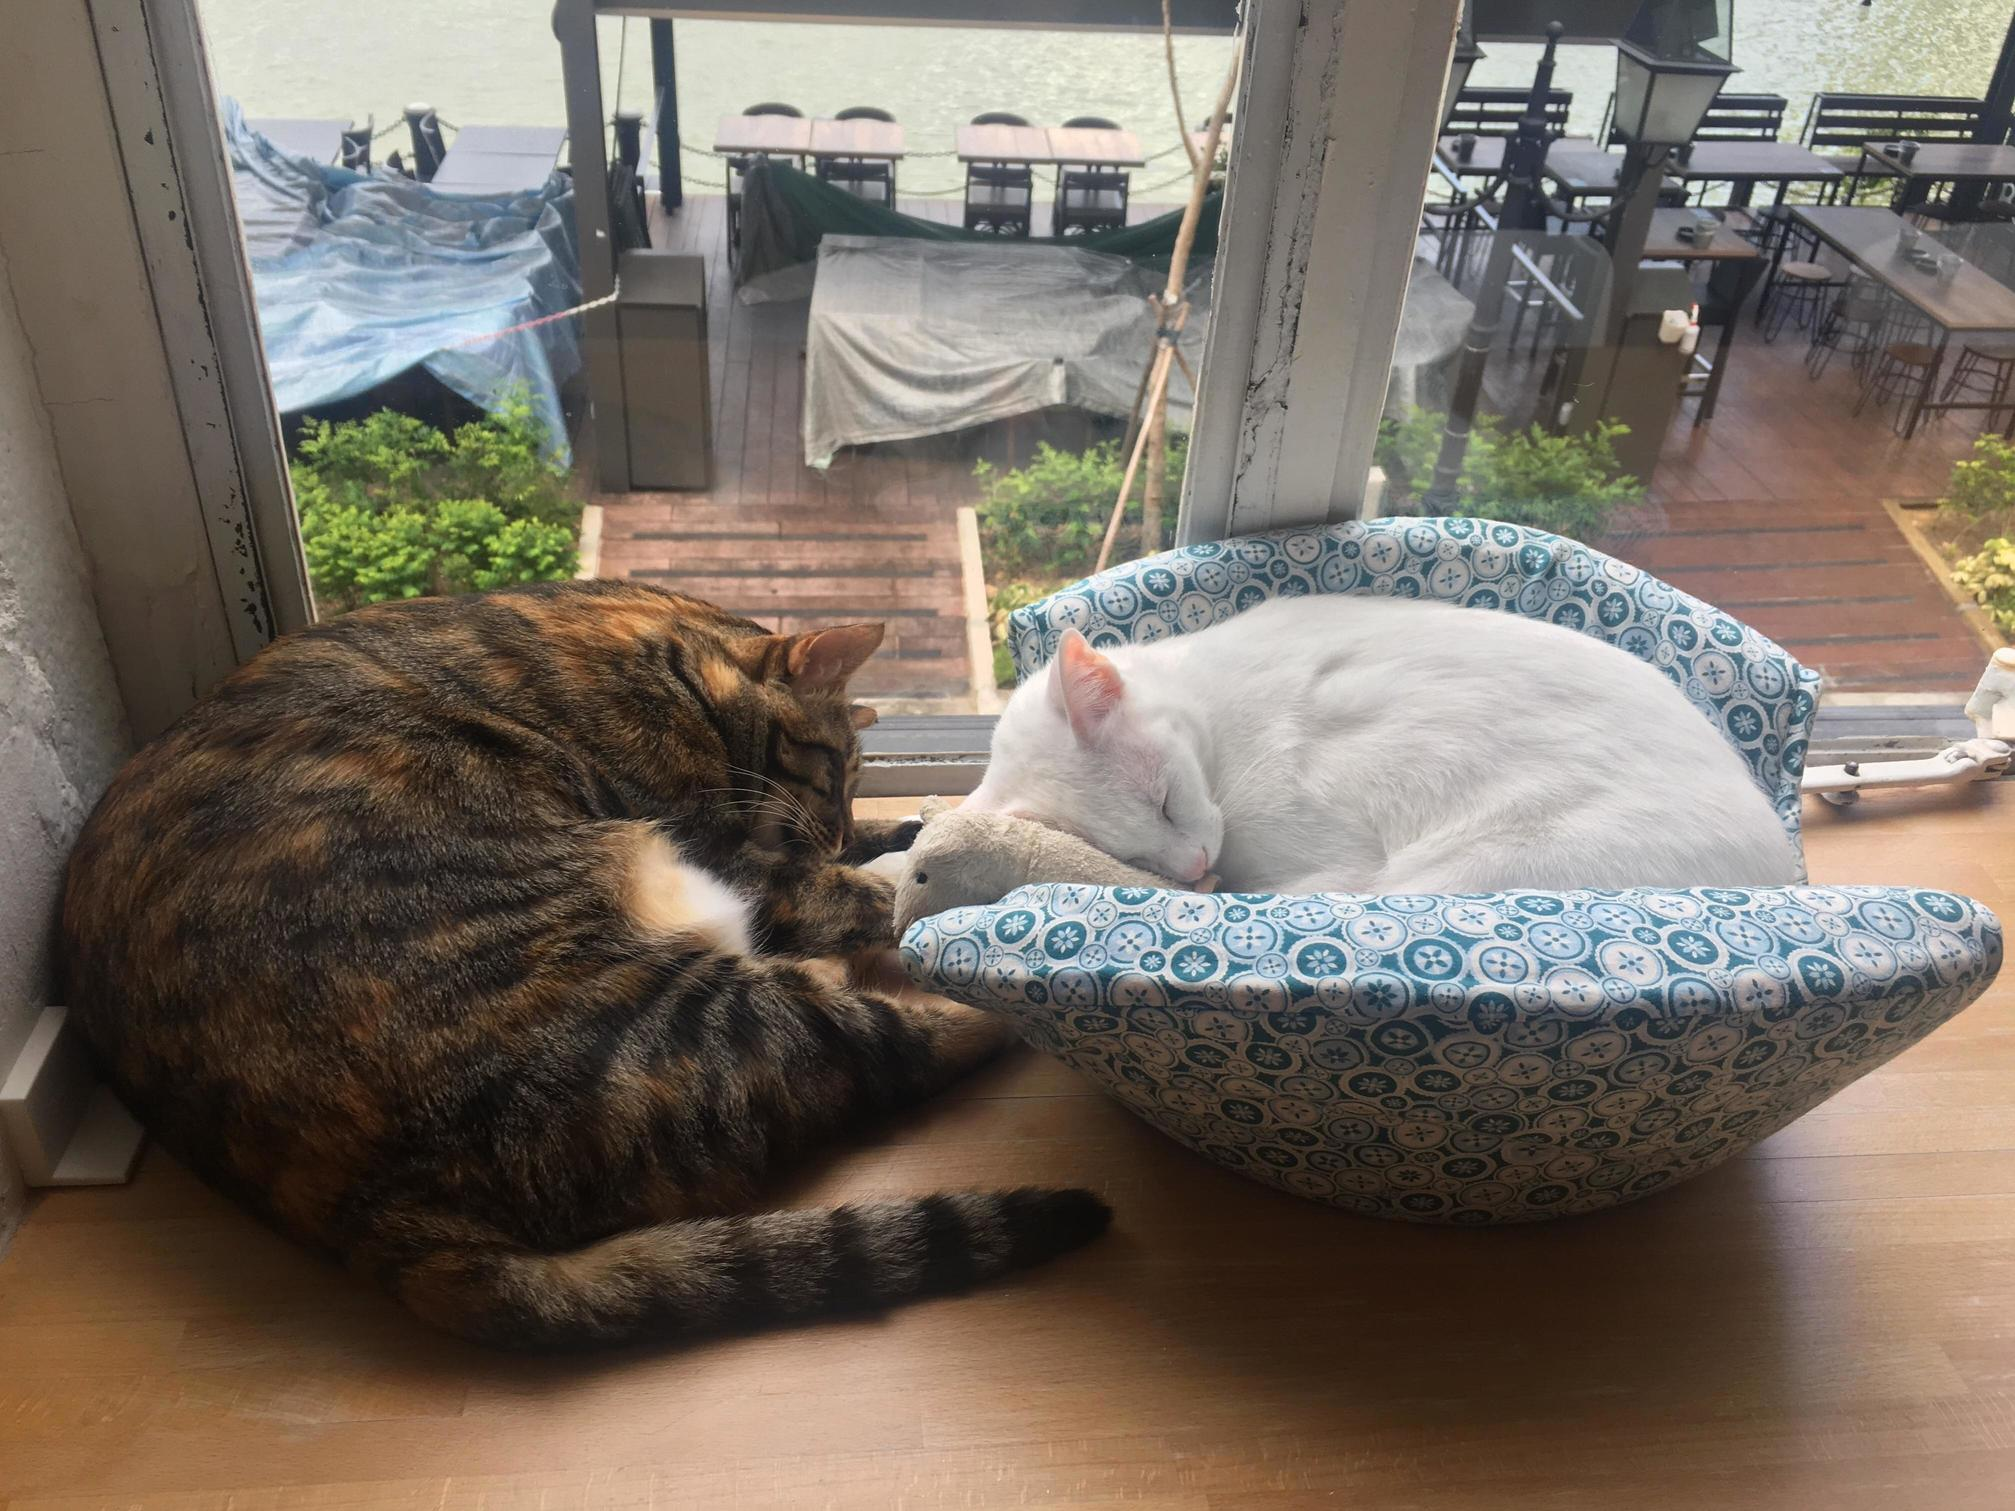 Just two cats sleeping peacefully over weekend